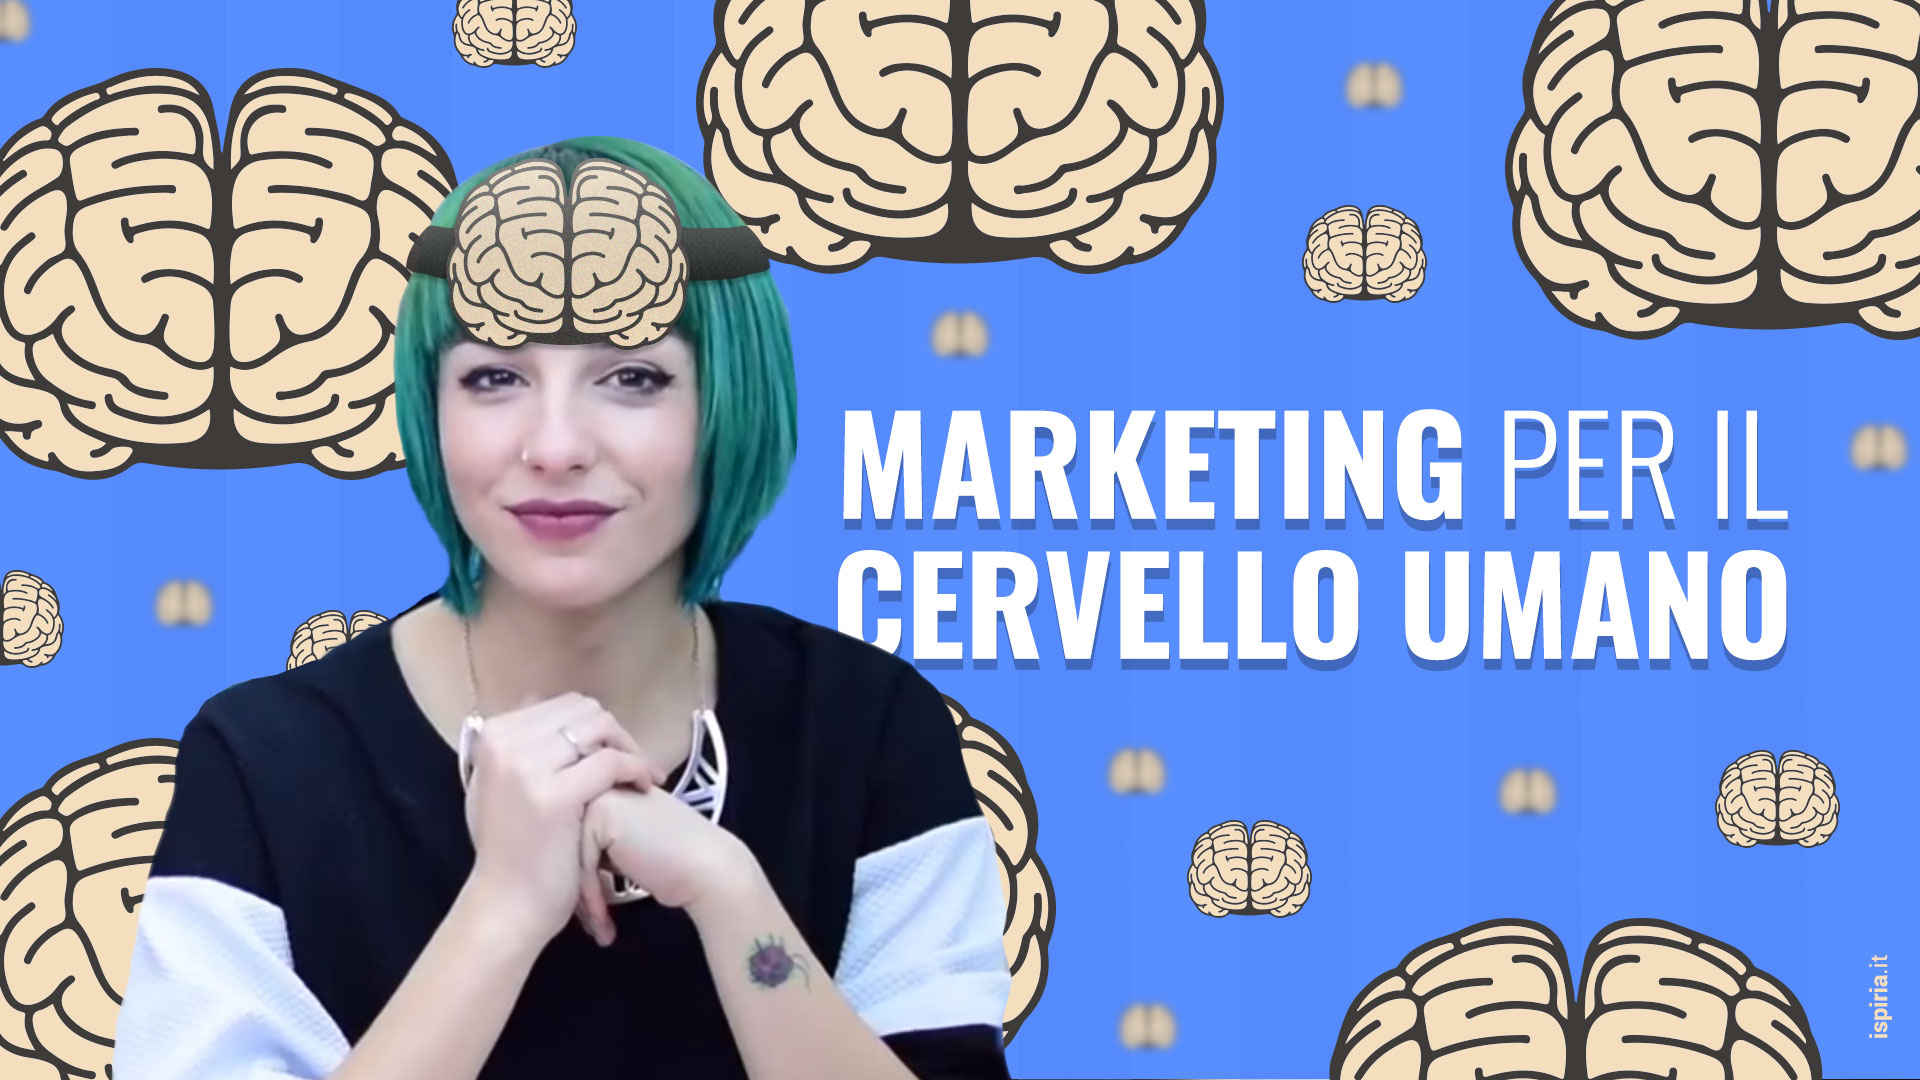 Neuromarketing, Come Fare Marketing Per Il Cervello, E Perché [GUIDA]